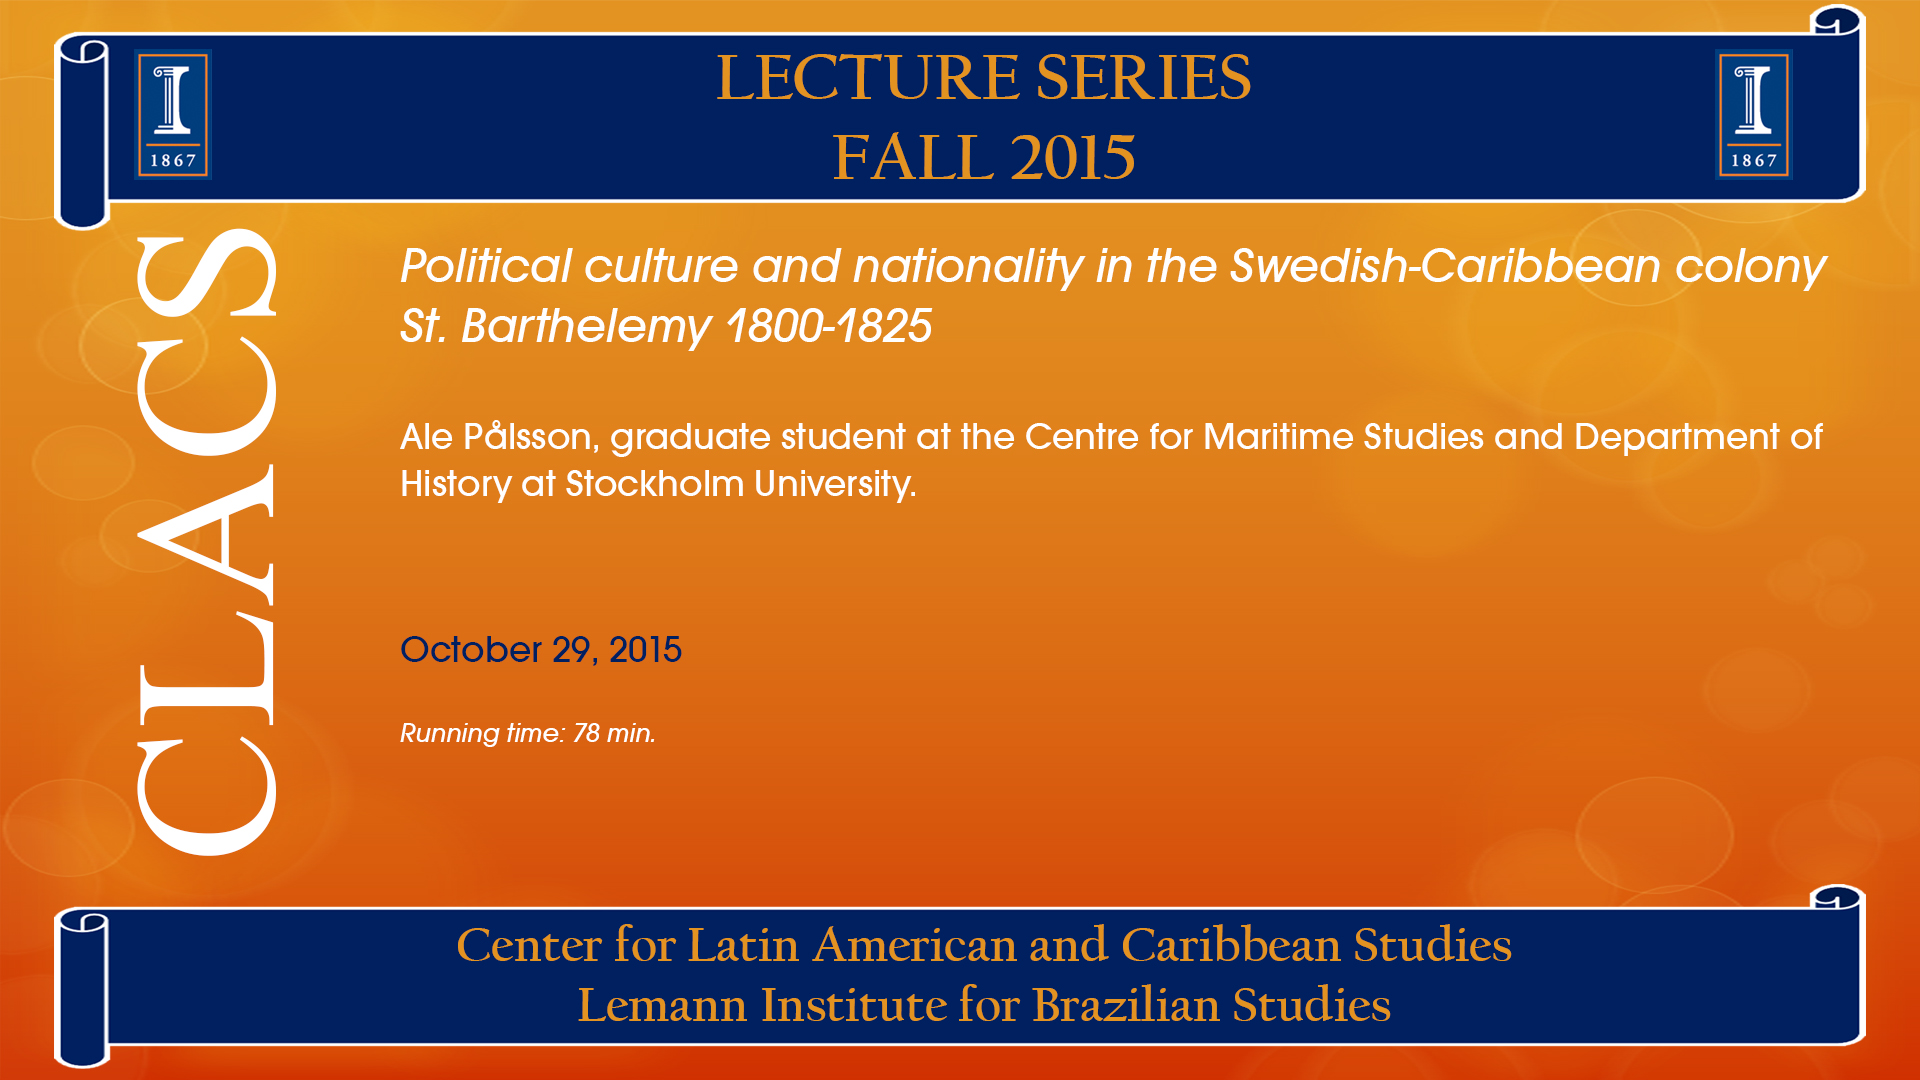 Political culture and nationality in the Swedish-Caribbean colony St. Barthelemy 1800-1825